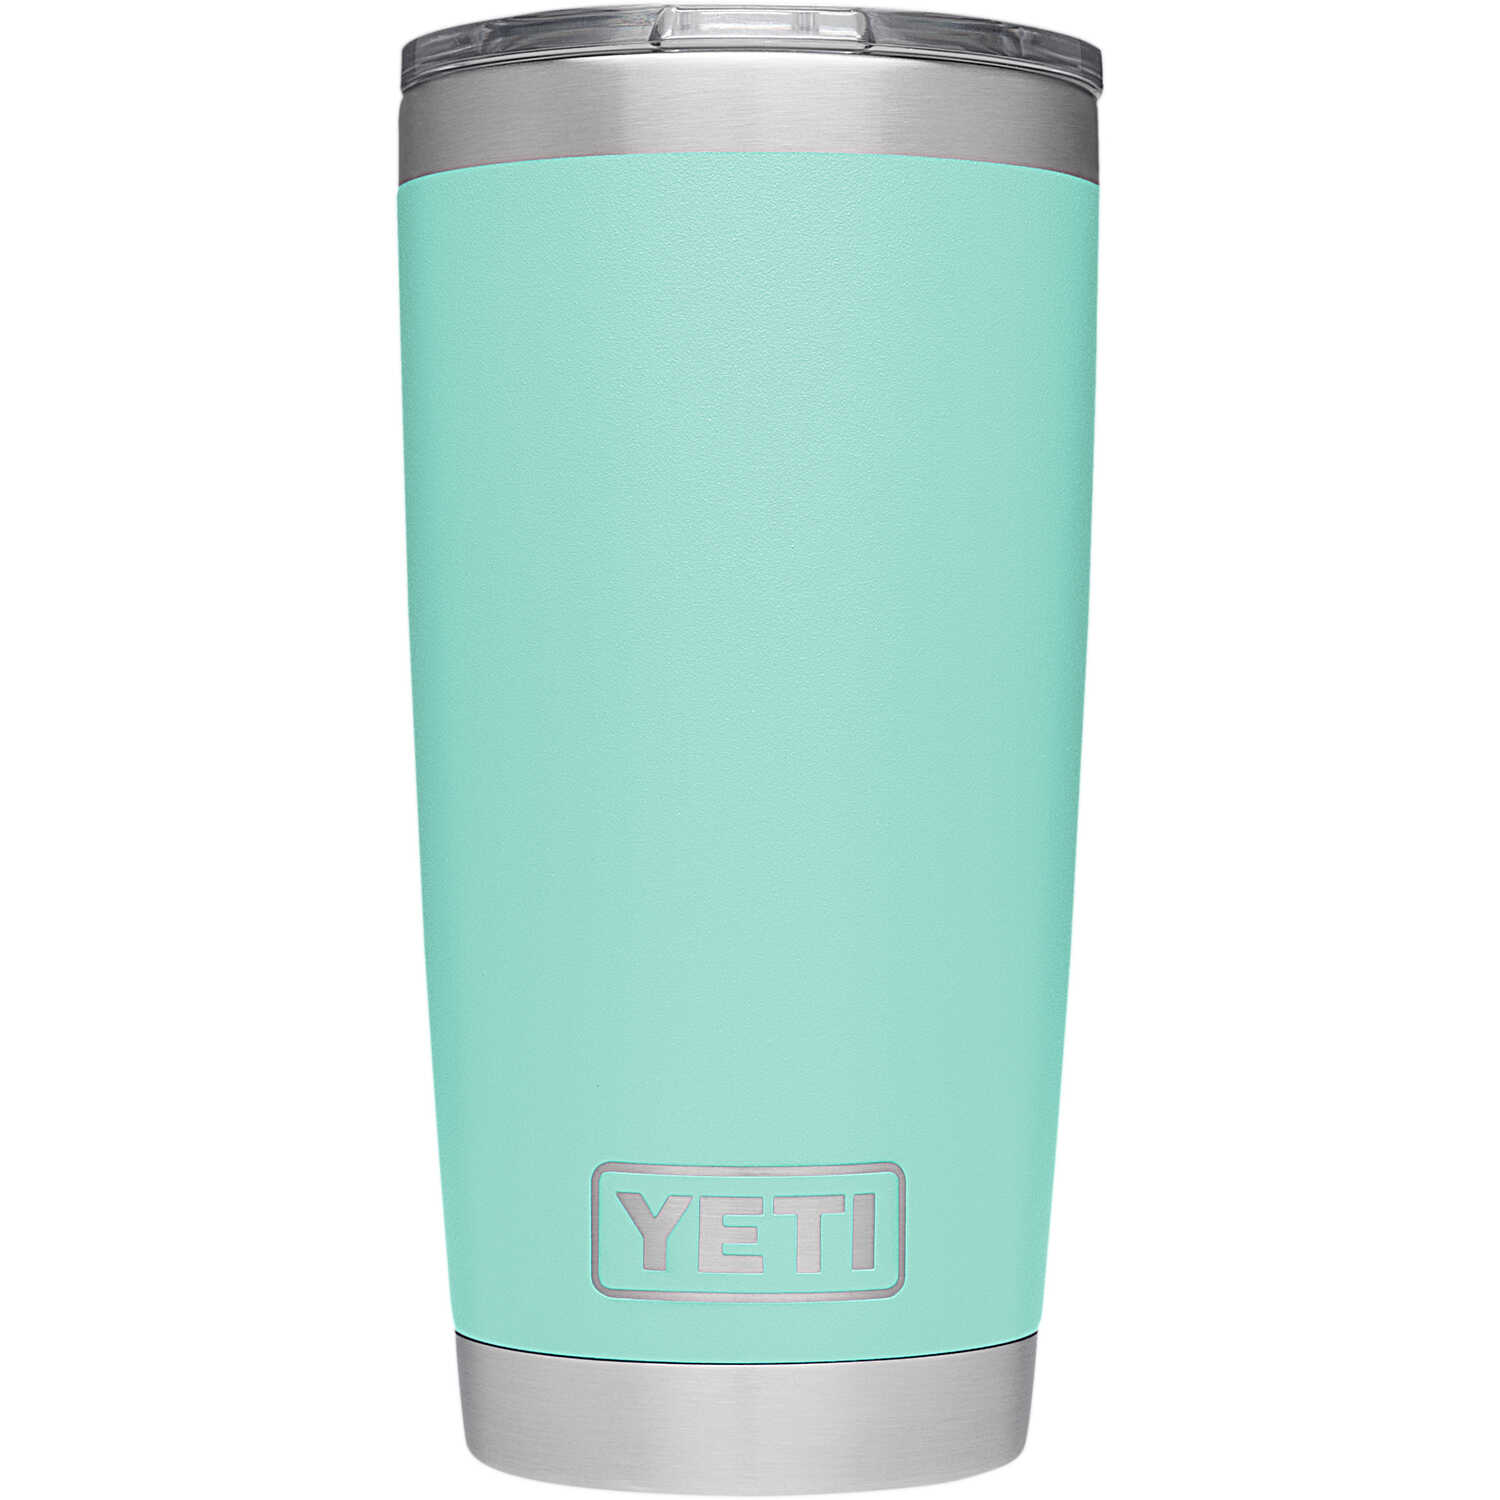 YETI  Rambler  Seafoam  Stainless Steel  Travel  Insulated Tumbler  BPA Free 20 oz.